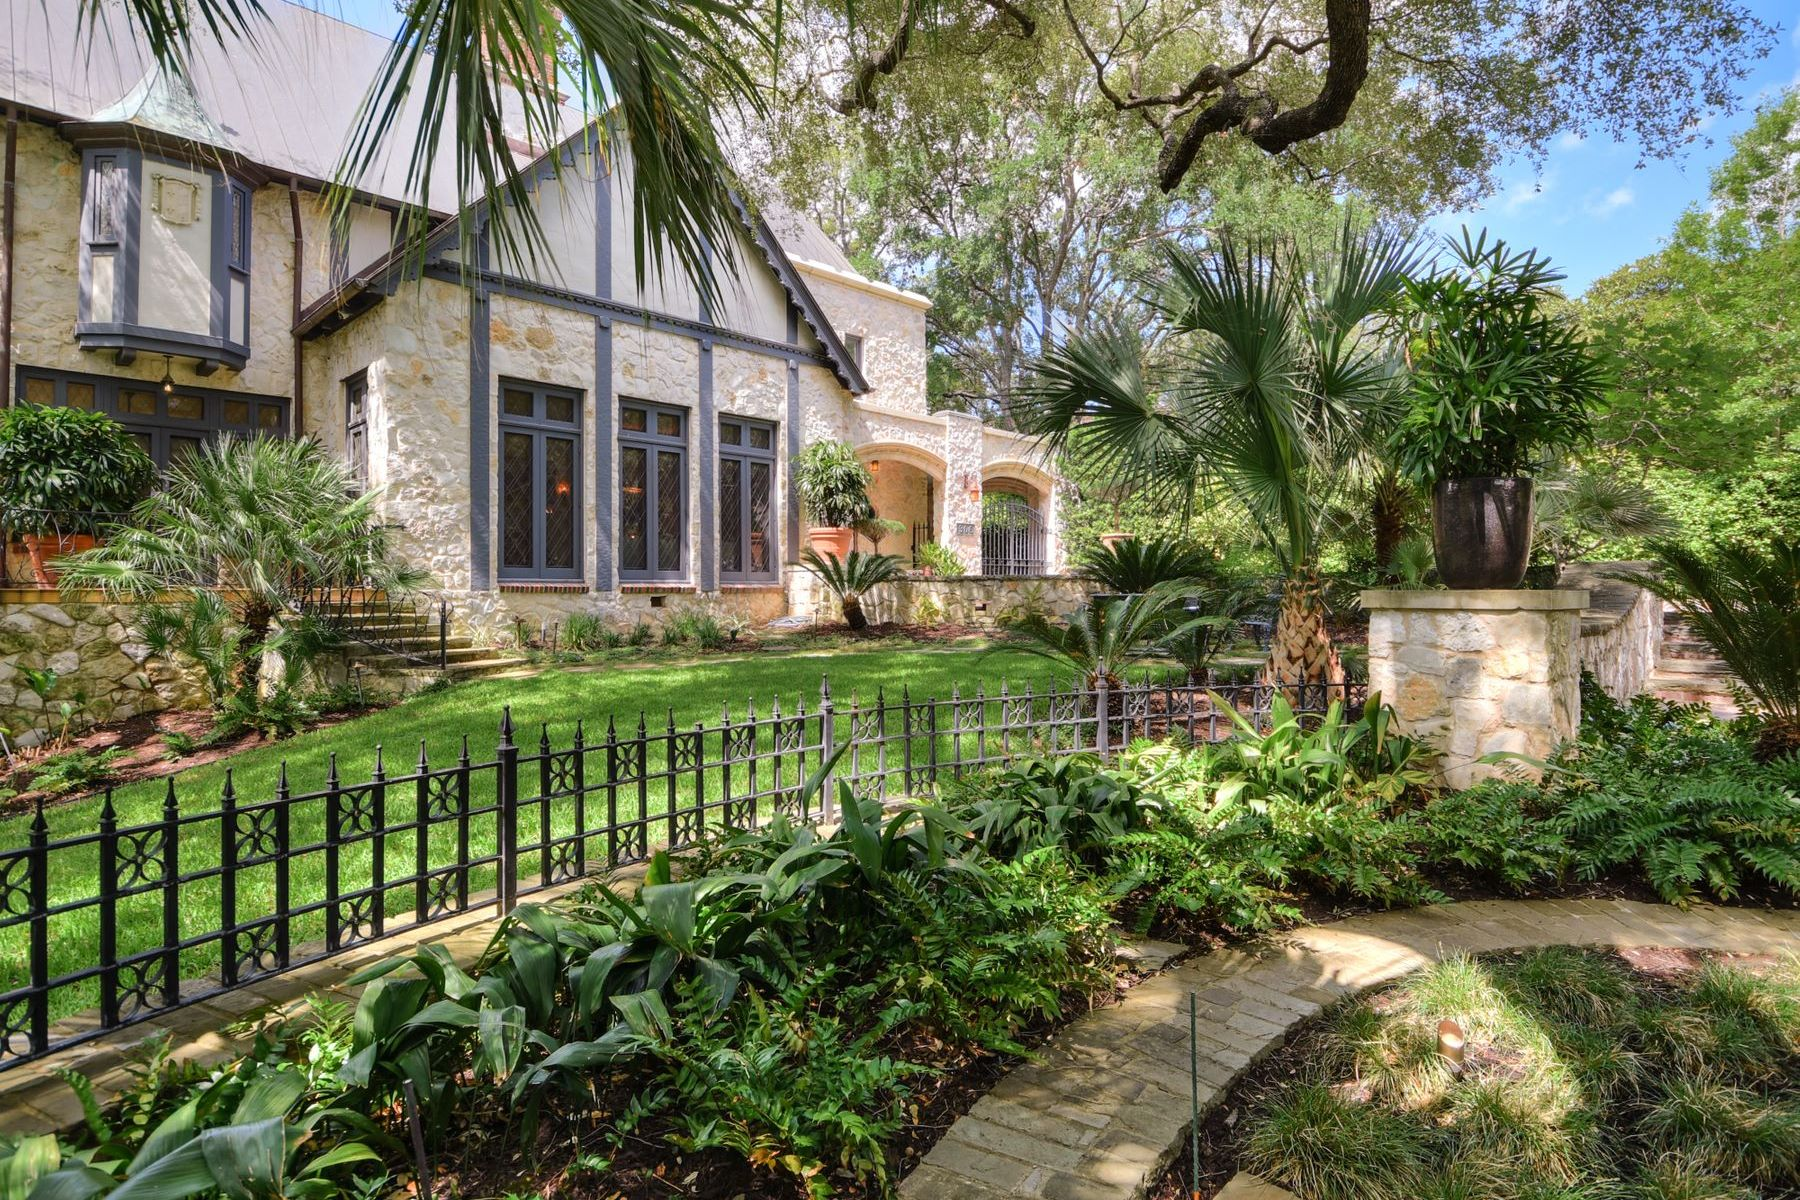 Single Family Homes for Sale at Upper Olmos Park Masterpiece which Captures a Moment in Time 306 East Hermosa Drive San Antonio, Texas 78212 United States